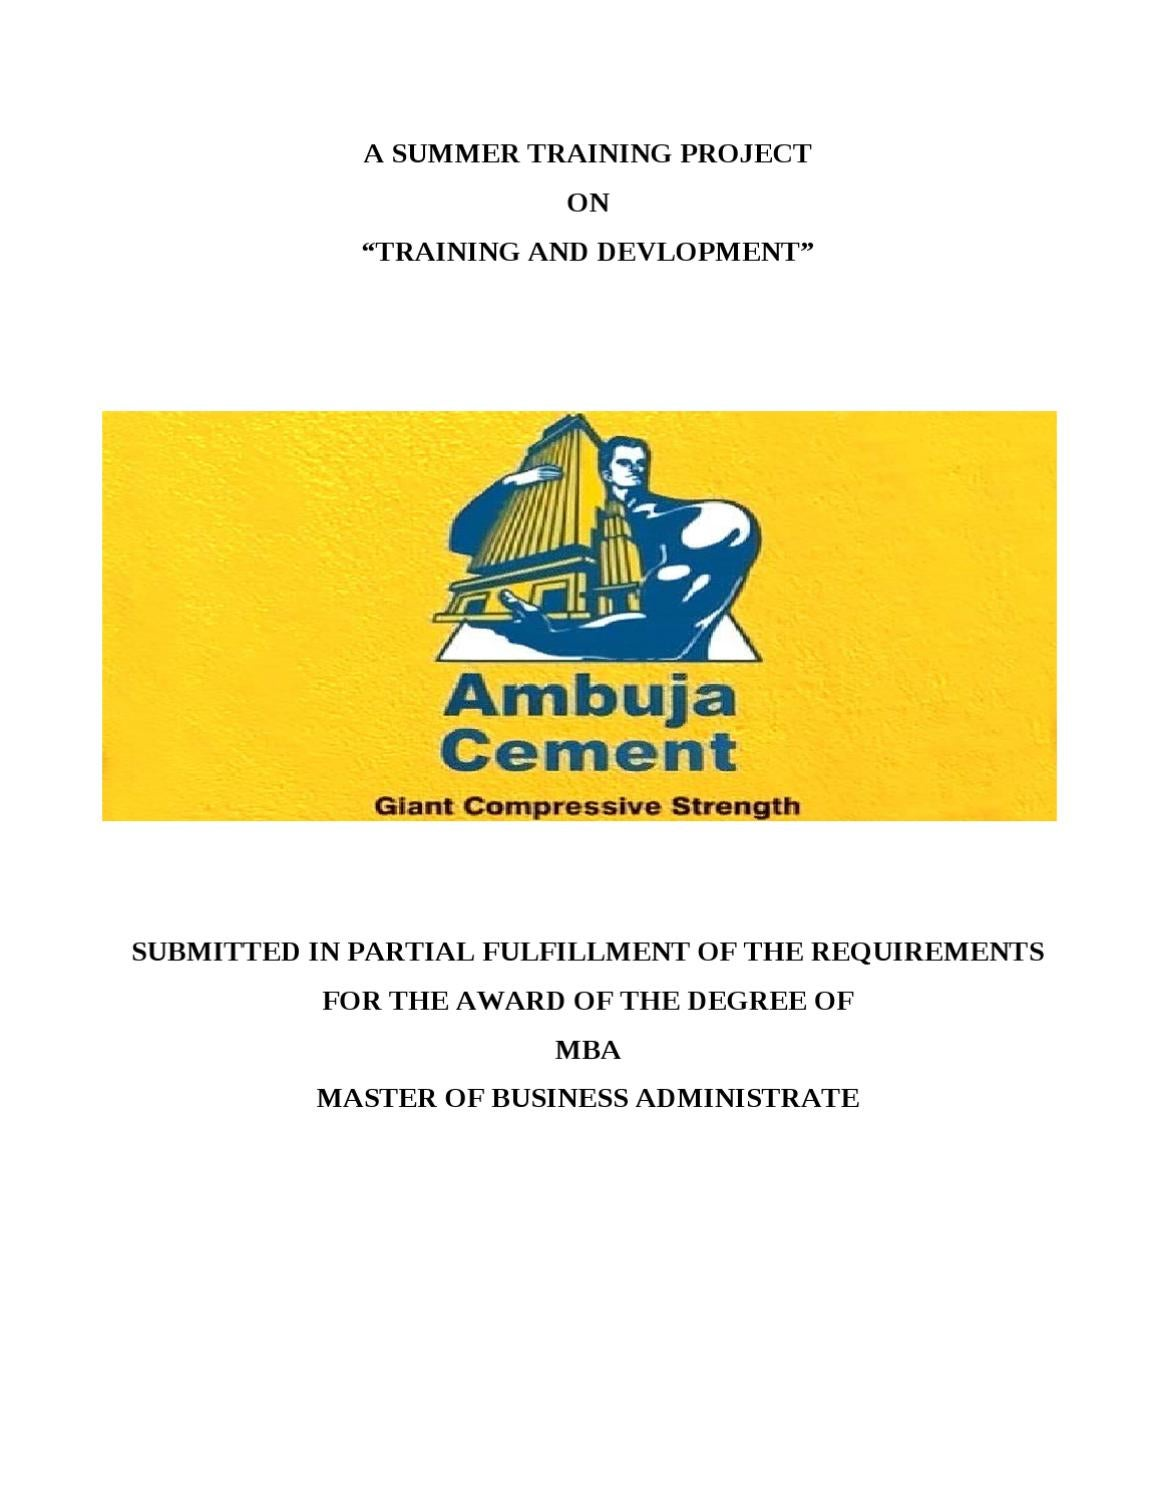 """summer interenship project report on cement company for training and devlopment A summer training project report on """"topic"""" at name or logo of the company submitted in partial fulfillment of the requirement for the award of degree."""